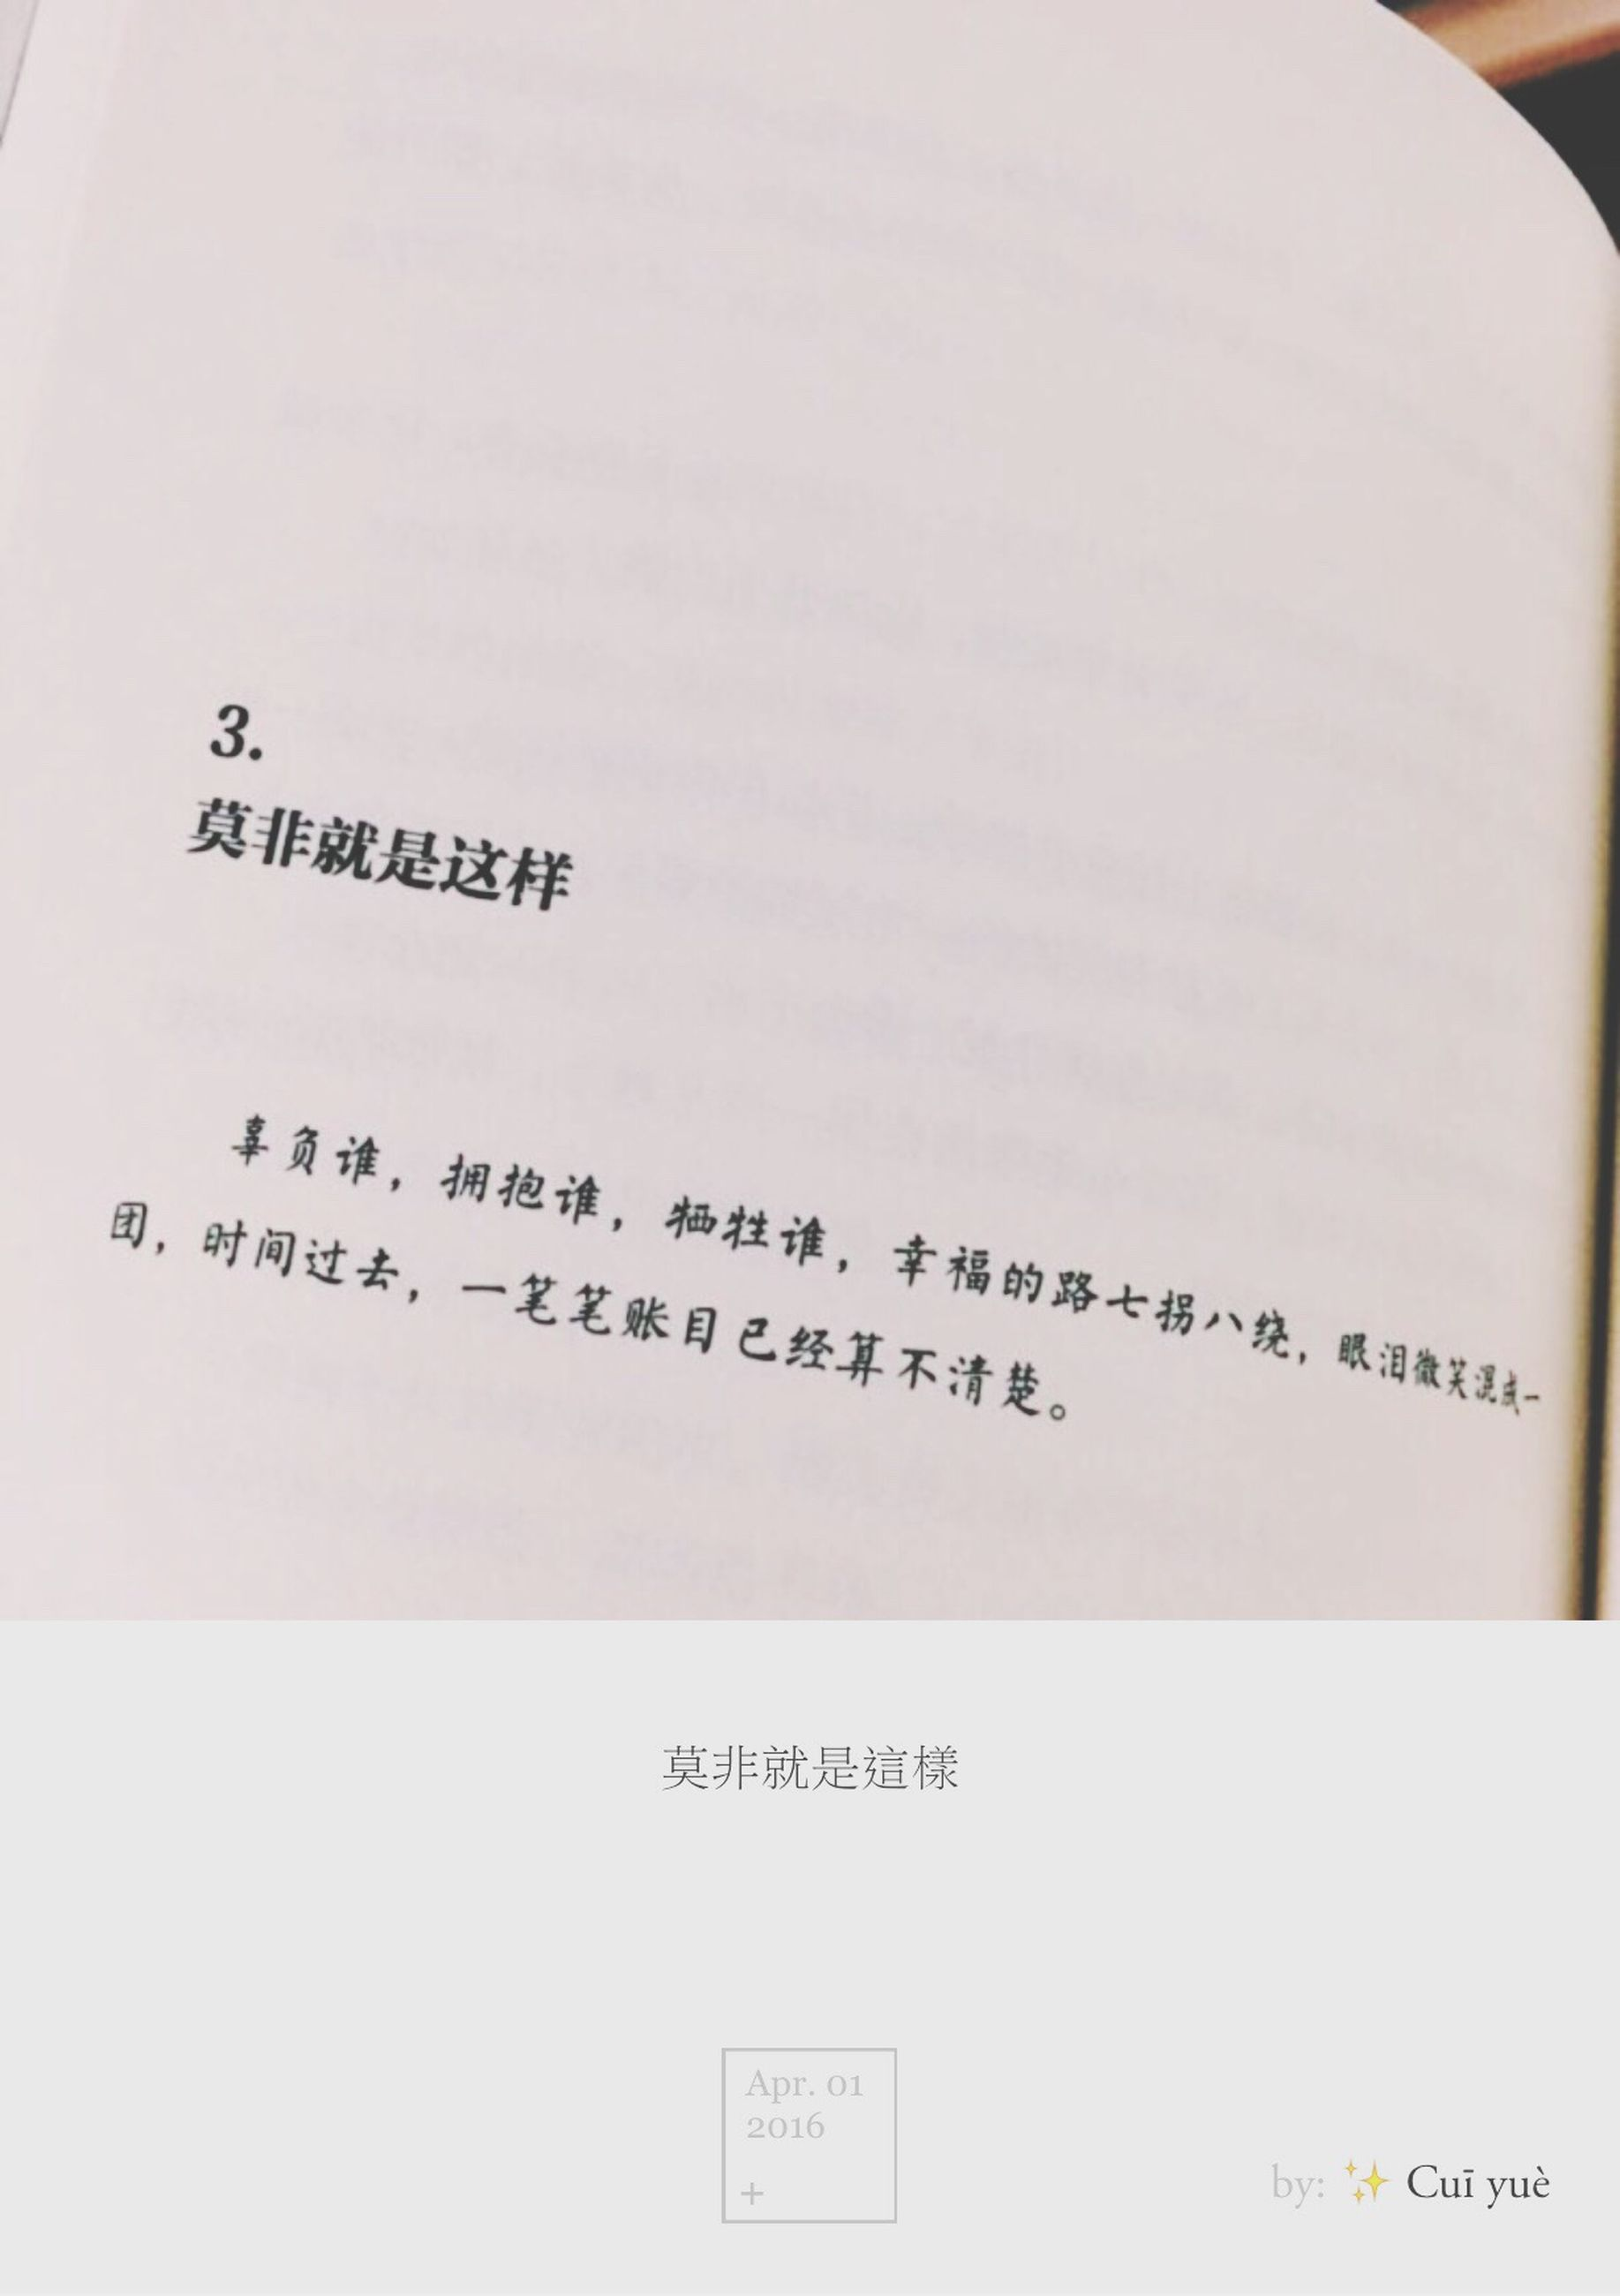 text, western script, communication, indoors, paper, studio shot, white background, copy space, close-up, high angle view, handwriting, part of, education, number, book, message, no people, cropped, white color, person